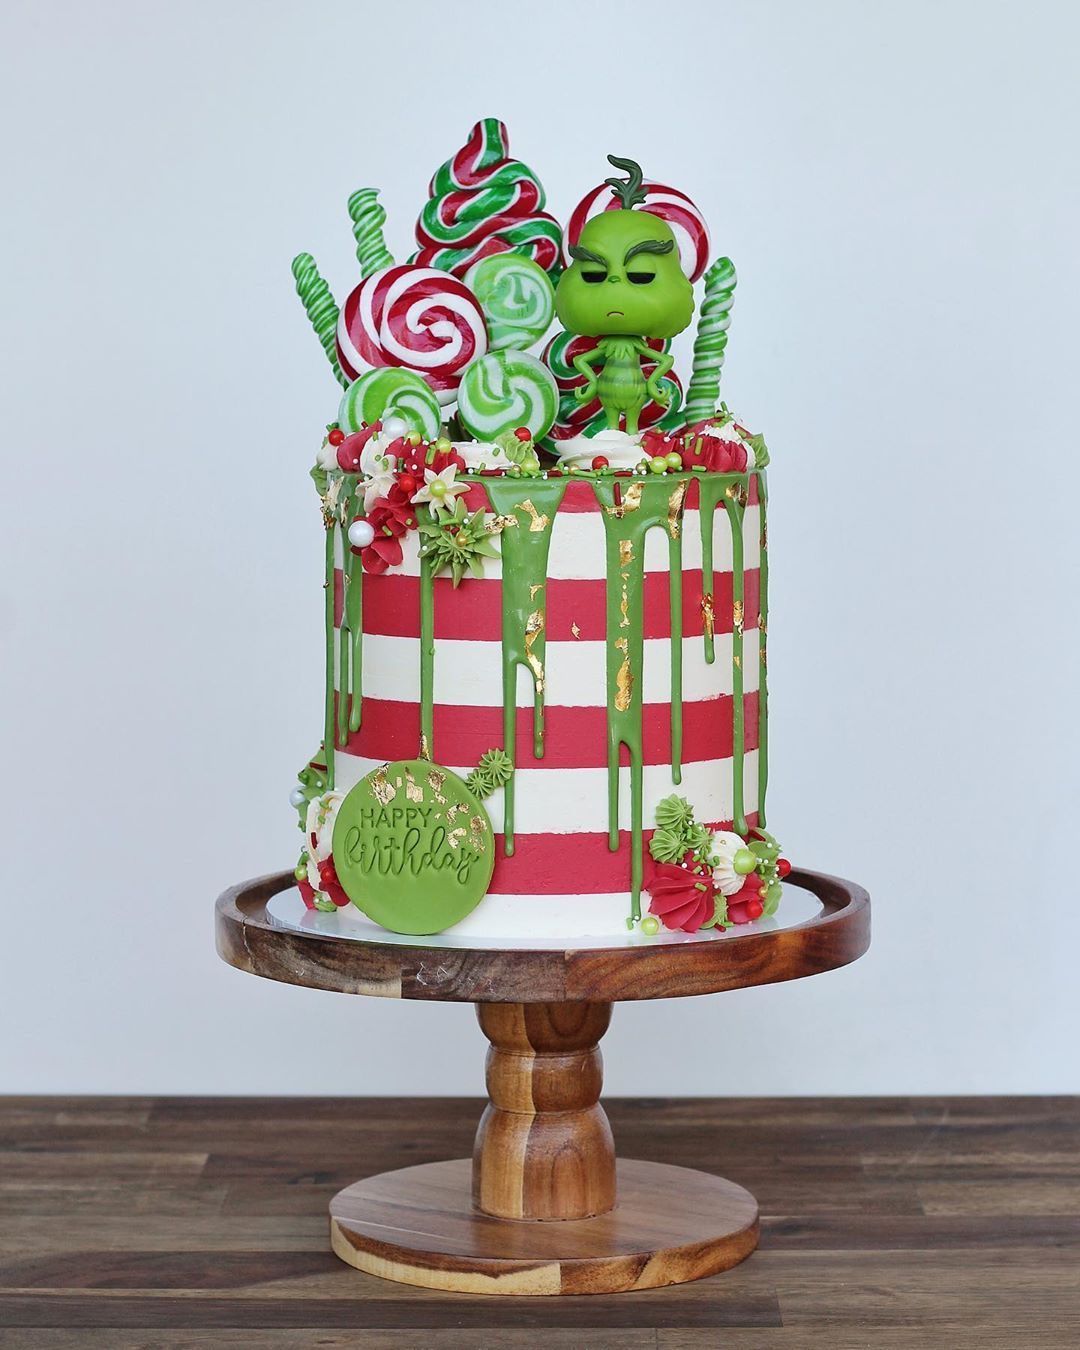 Christmas Cakes 2021 Pinterest 790 Christmas Decorated Cakes Ideas In 2021 Christmas Cake Cupcake Cakes Cake Decorating